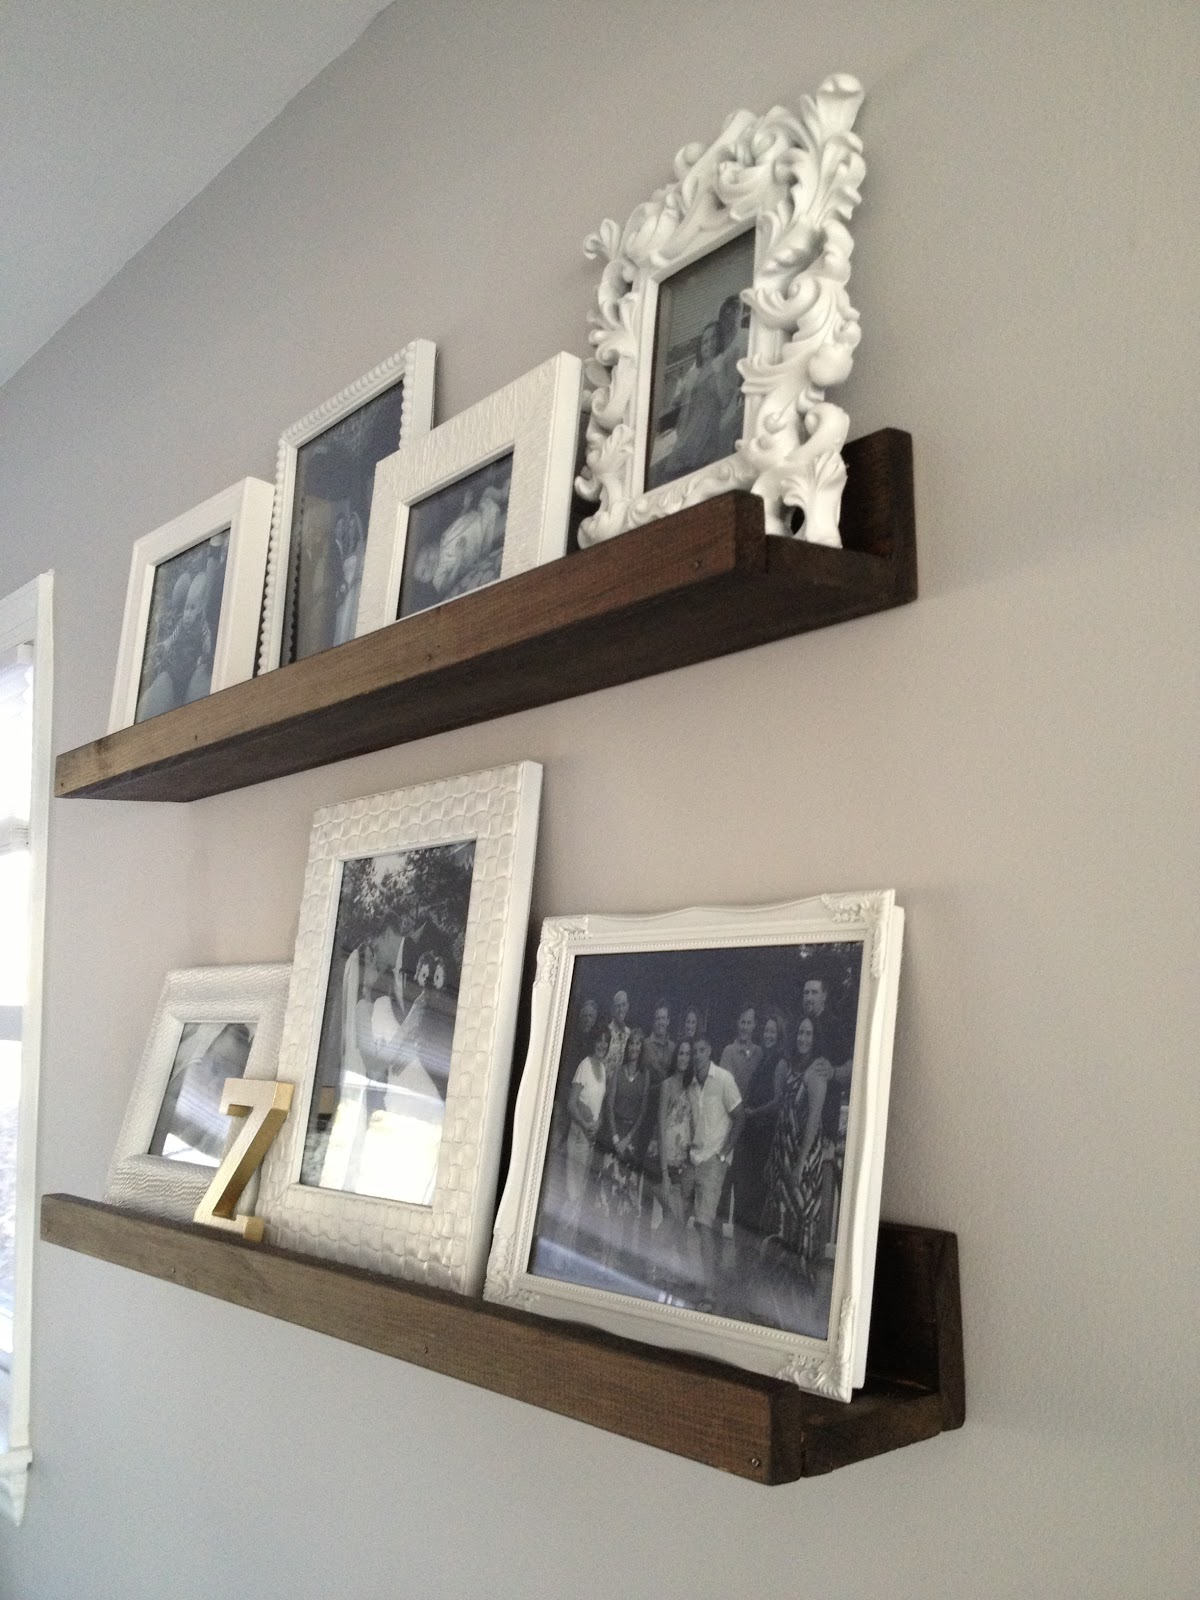 crown molding shelves shelf with hooks wood wall ledges rustic img reclaimed ture ledge pottery barn floating installation instructions hardware inch retro ranch reno diy